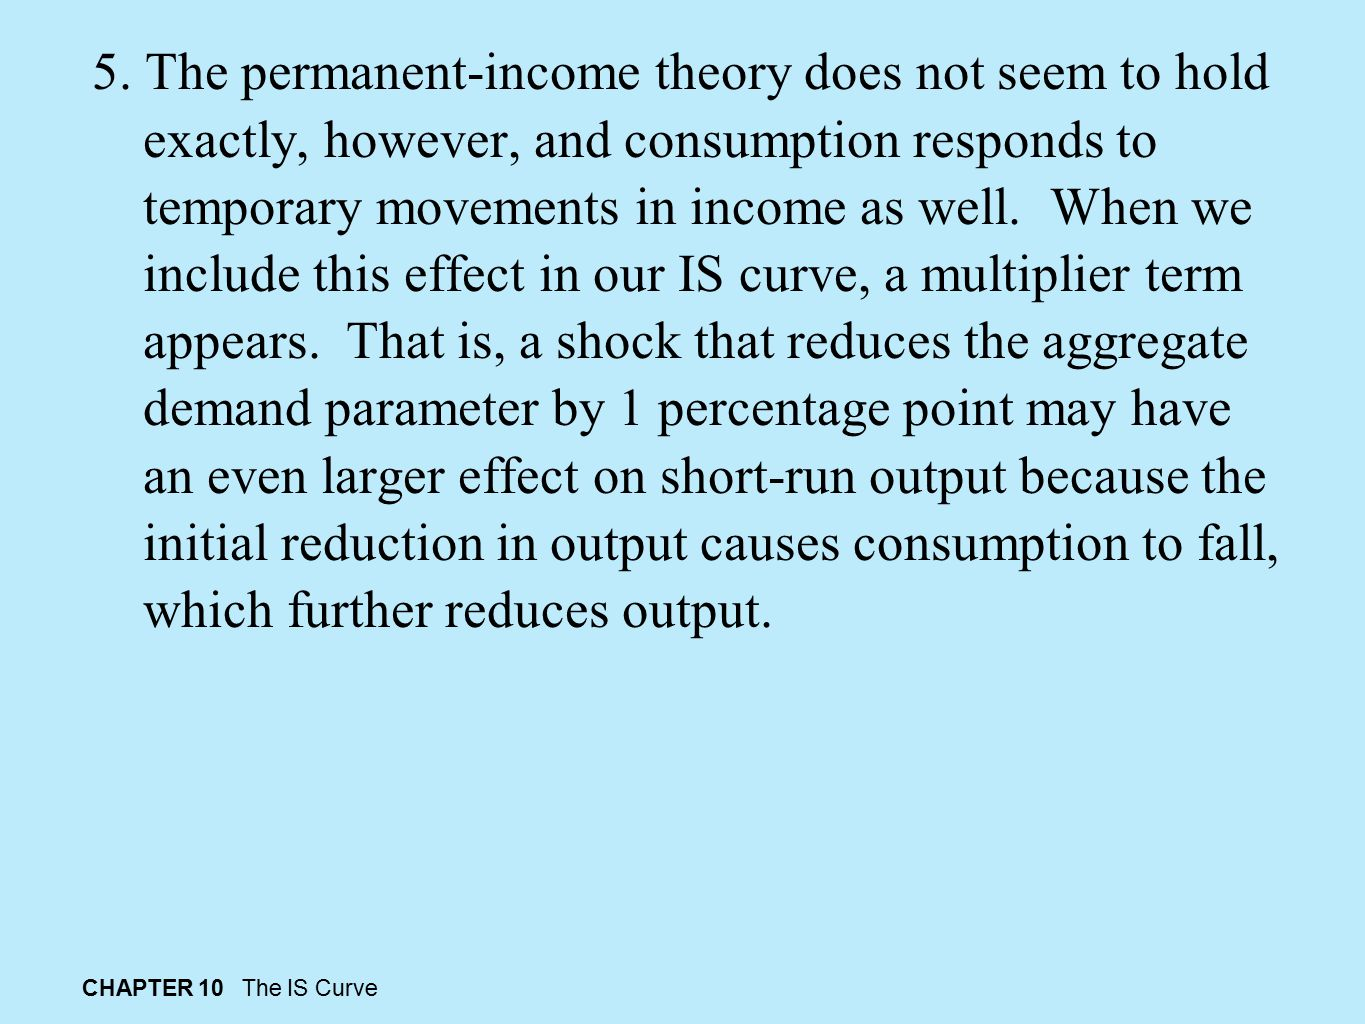 5. The permanent-income theory does not seem to hold exactly, however, and consumption responds to temporary movements in income as well. When we include this effect in our IS curve, a multiplier term appears. That is, a shock that reduces the aggregate demand parameter by 1 percentage point may have an even larger effect on short-run output because the initial reduction in output causes consumption to fall, which further reduces output.